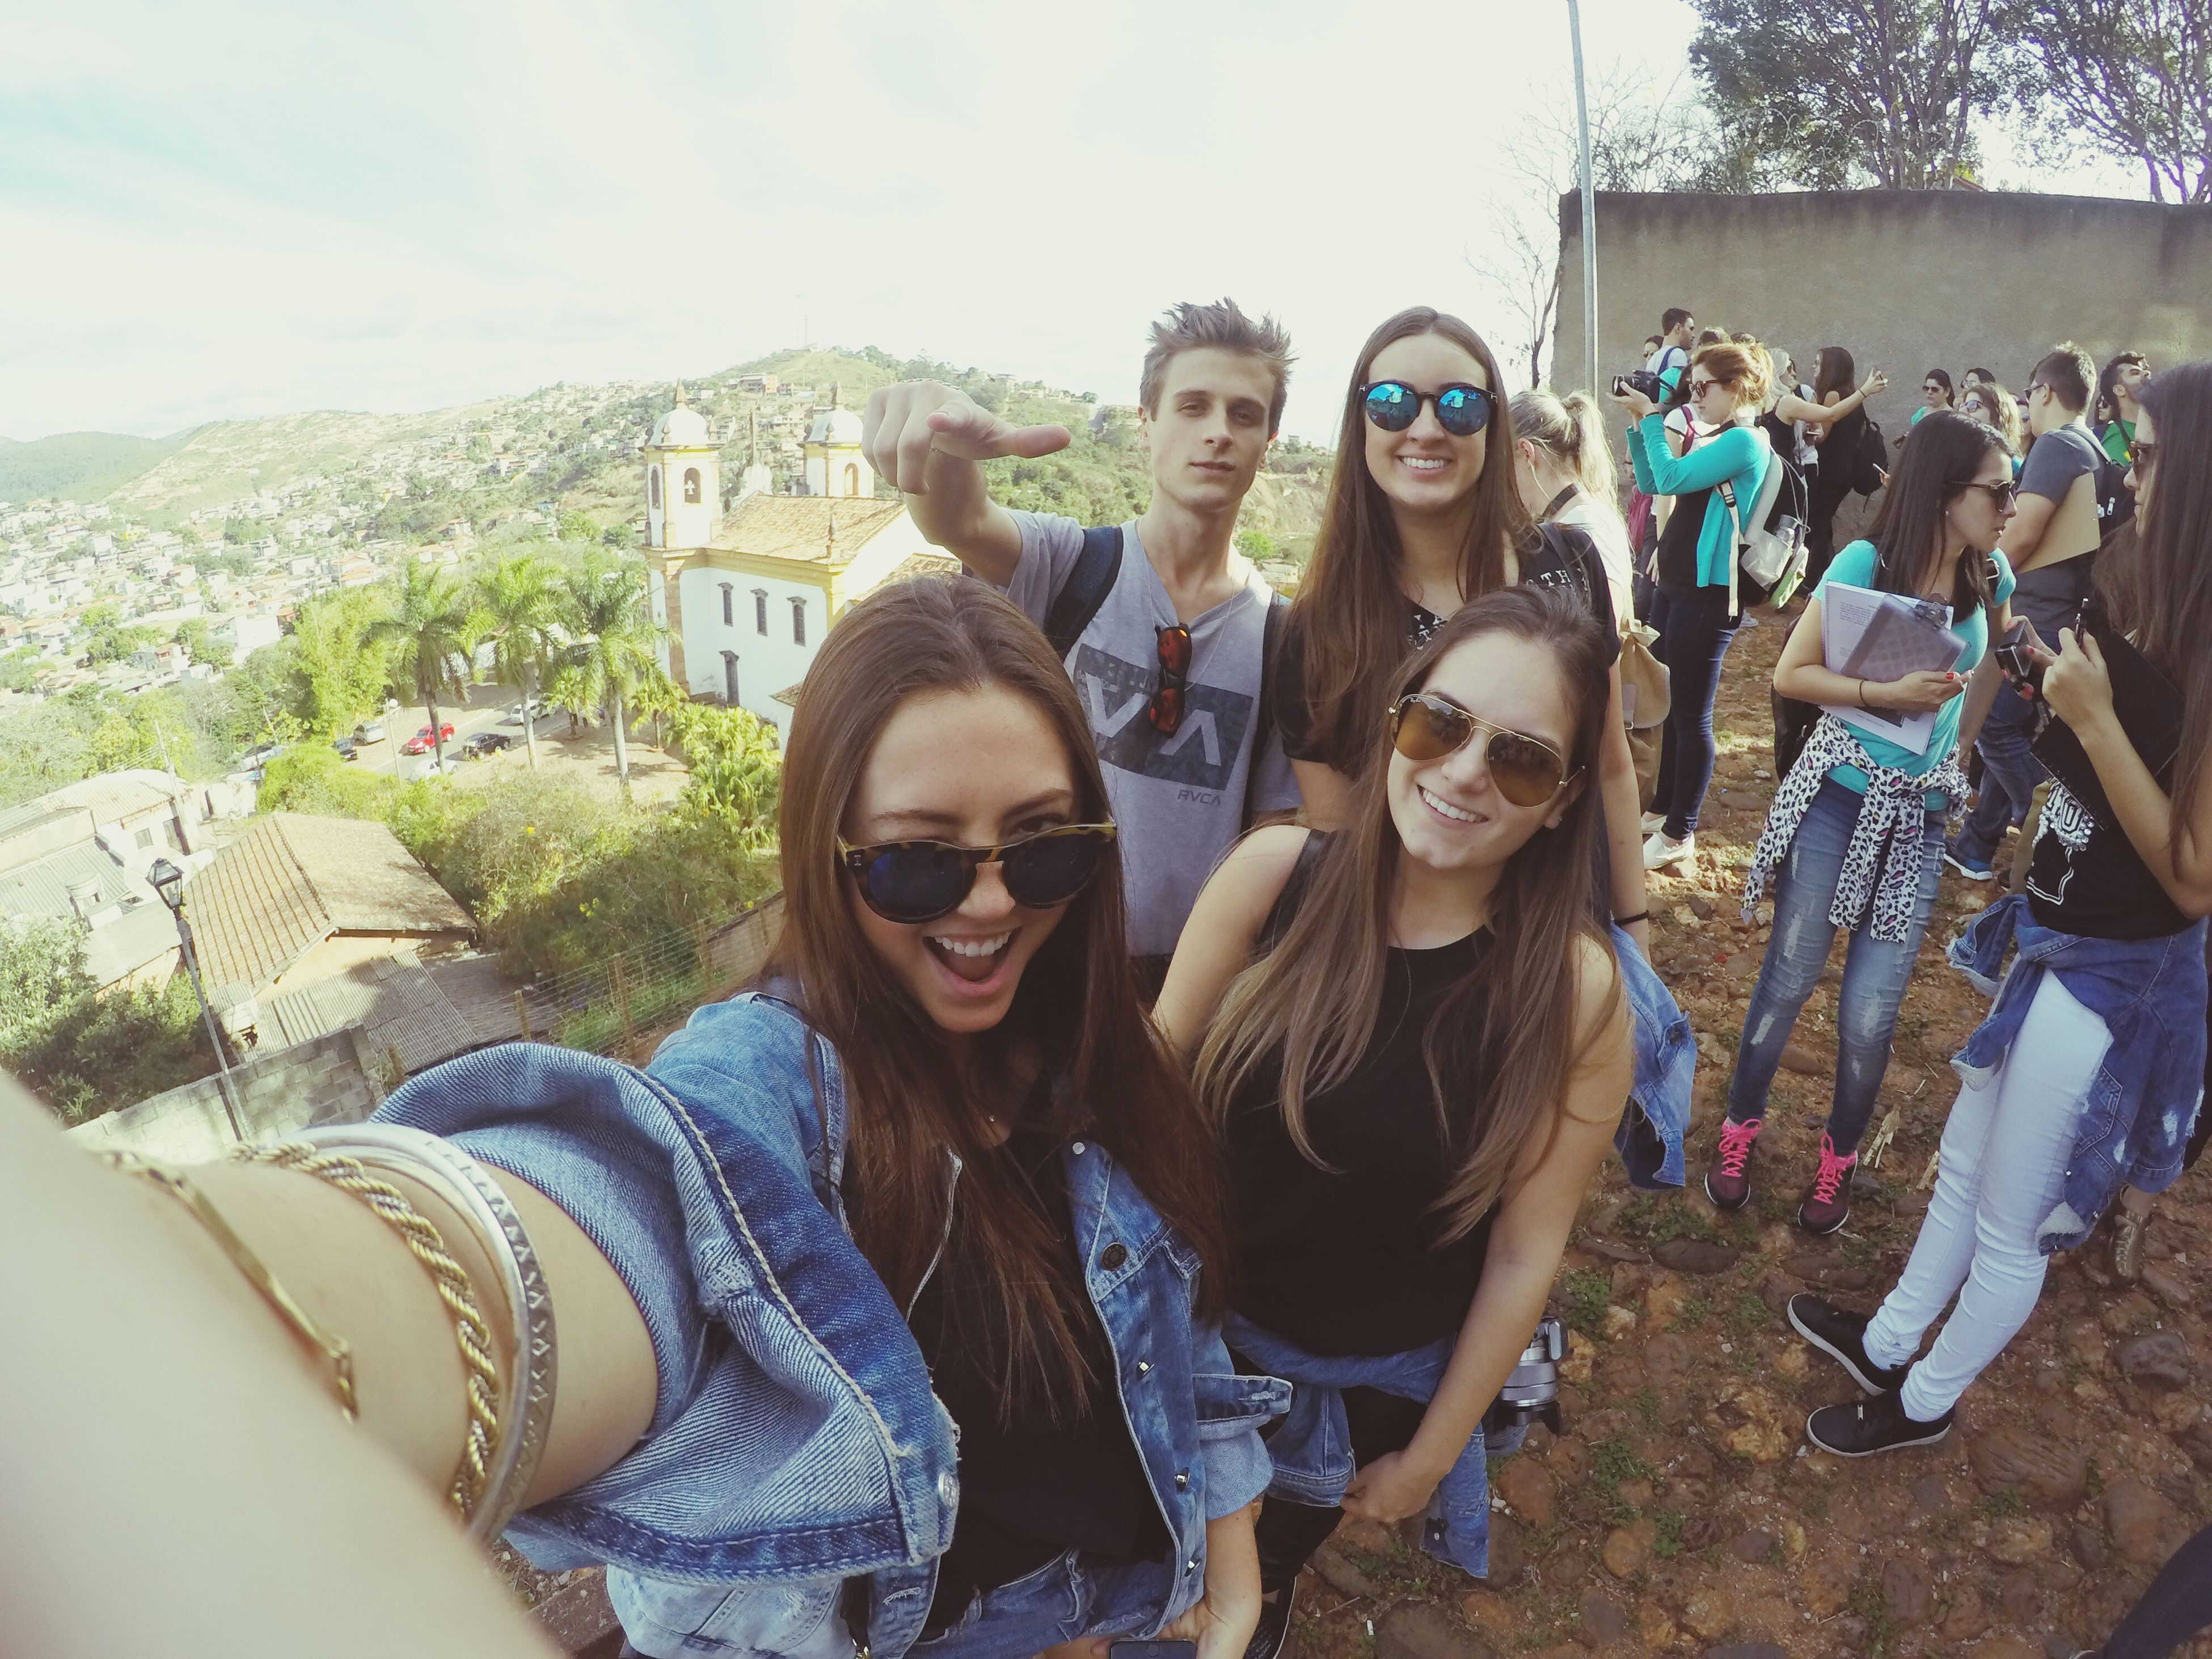 togetherness, young women, portrait, leisure activity, lifestyles, friendship, young adult, looking at camera, bonding, architecture, love, standing, building exterior, smiling, built structure, person, casual clothing, toothy smile, sky, long hair, outdoors, day, friend